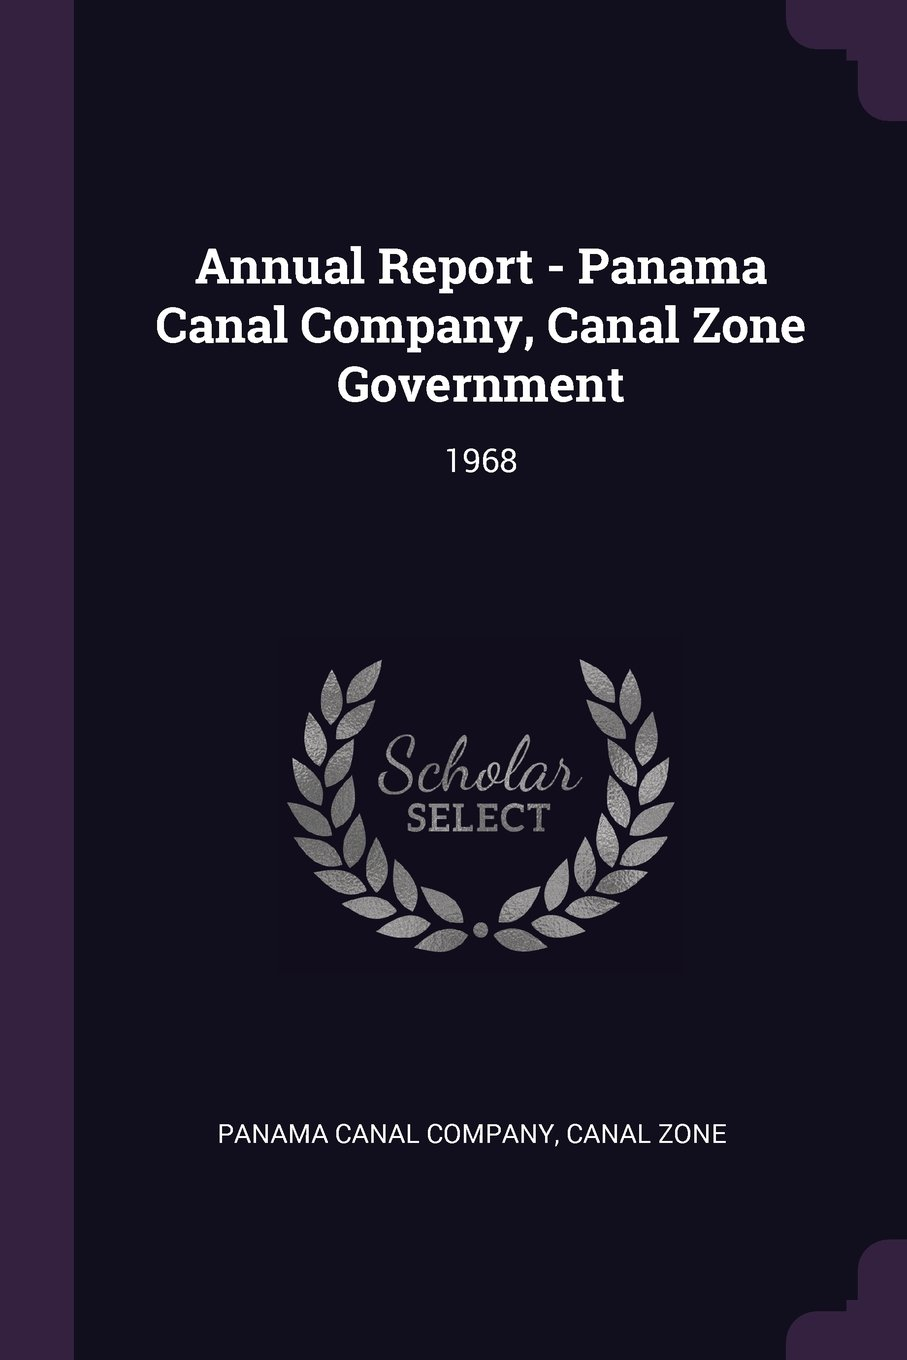 Annual Report - Panama Canal Company, Canal Zone Government: 1968 pdf